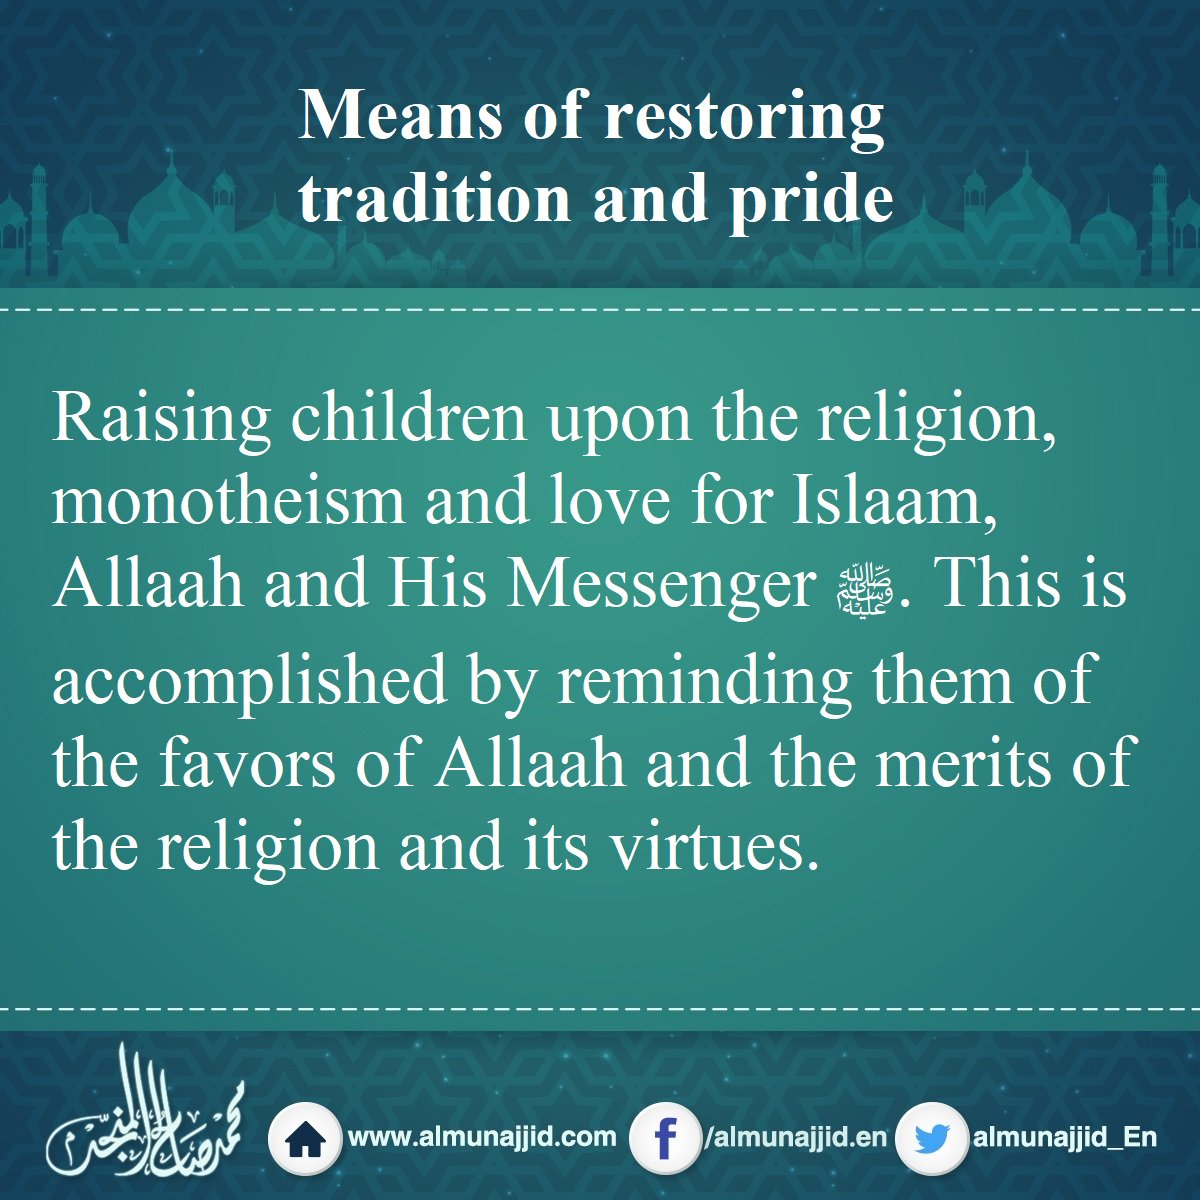 Means of restoring tradition and pride  #tradition #pride #children #religion #love #Islaam #Allah<br>http://pic.twitter.com/18Gd2VysbU